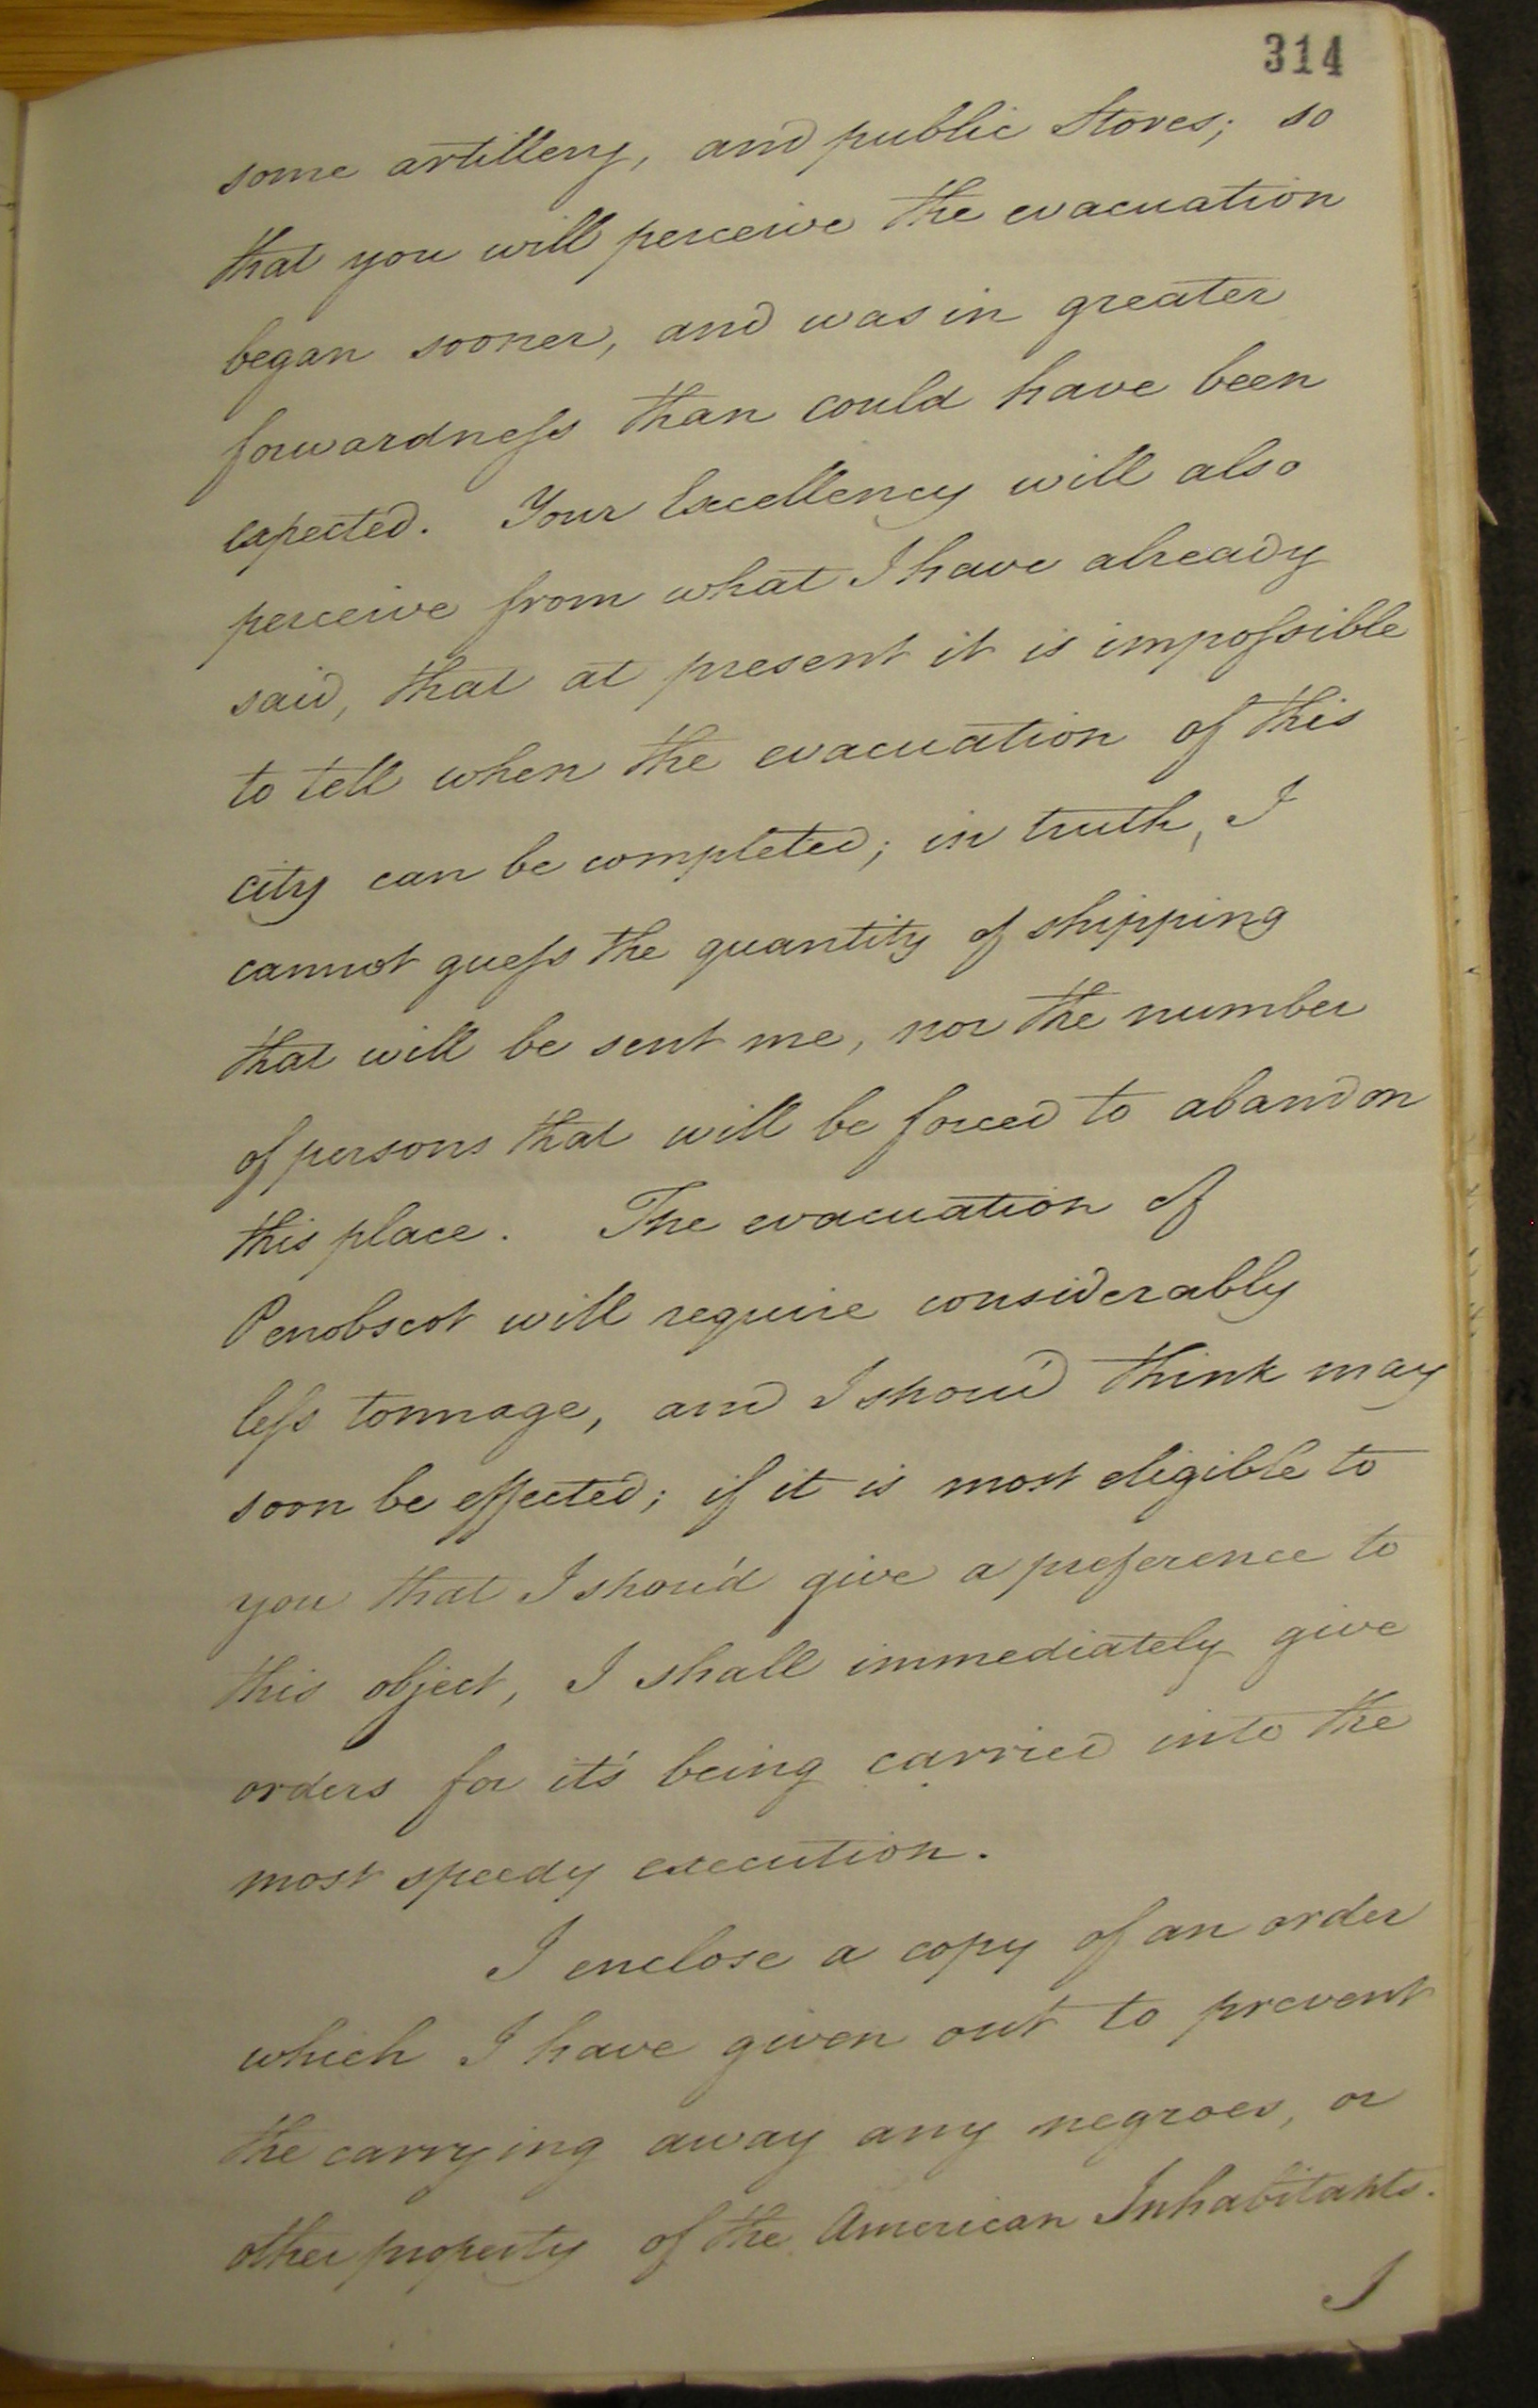 The Washington - Carlton Correspondence